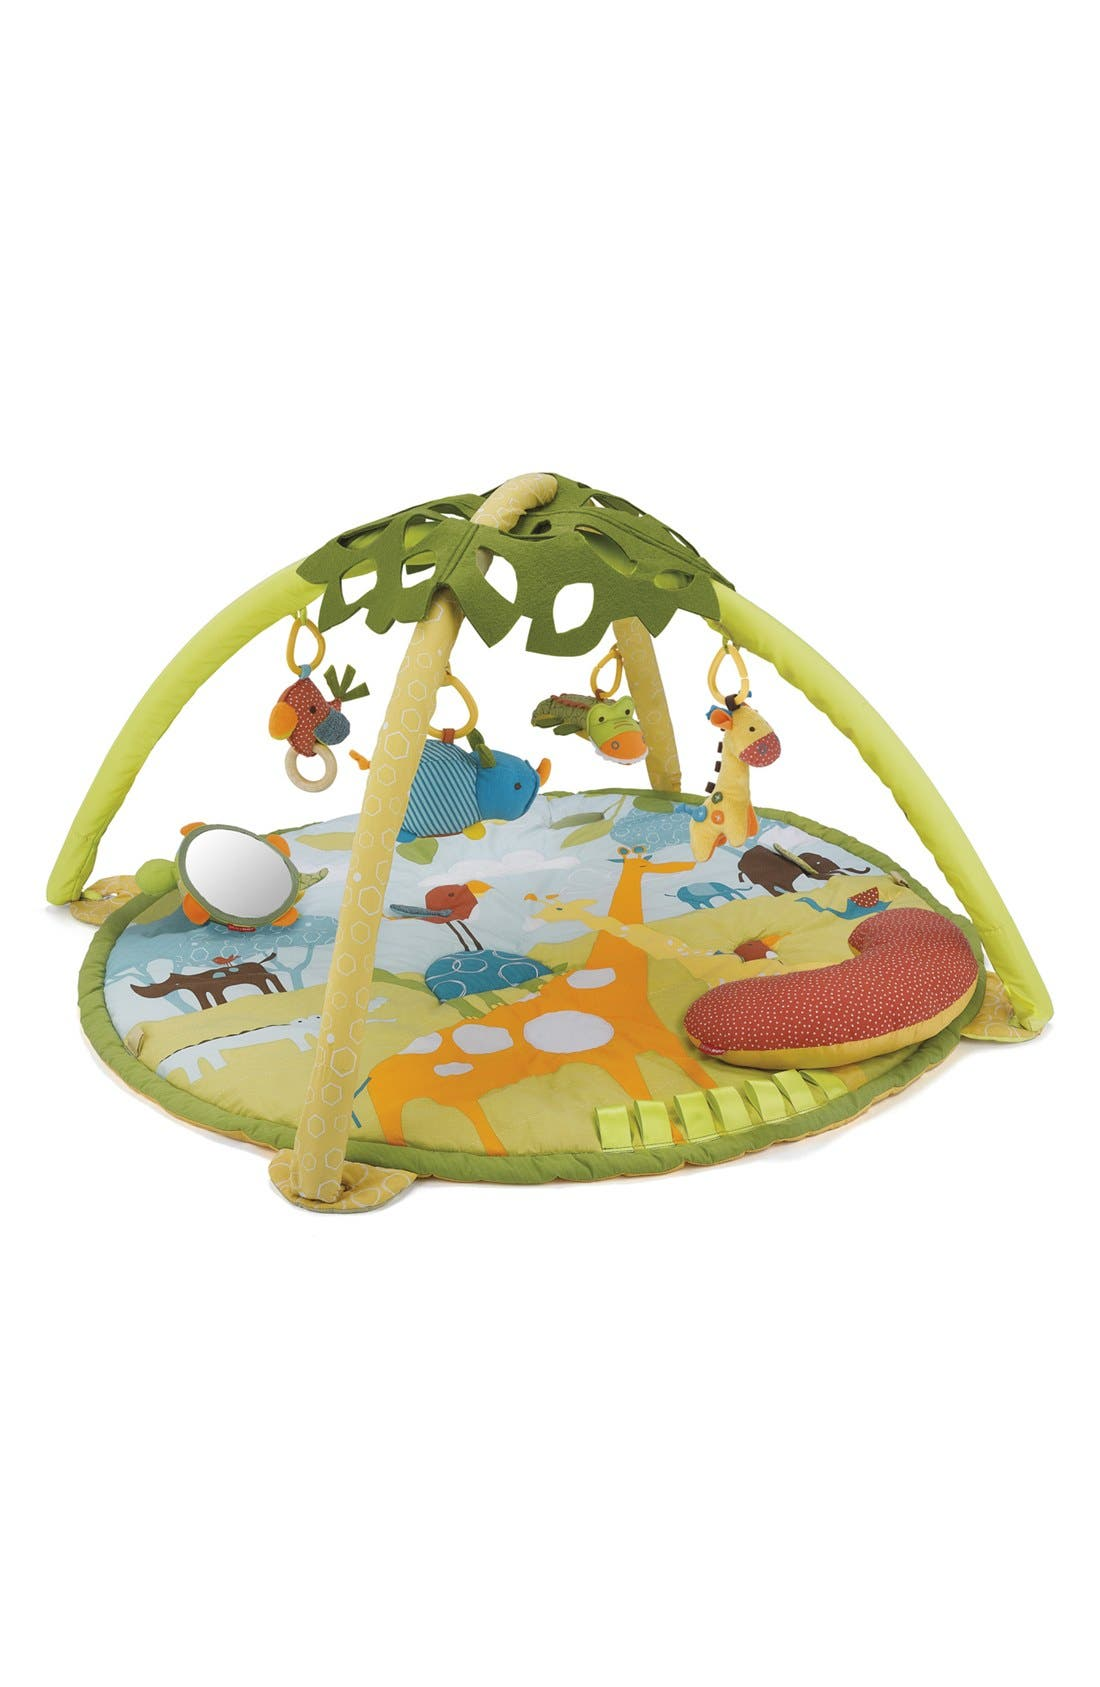 'Giraffe Safari' Activity Gym,                             Main thumbnail 1, color,                             300